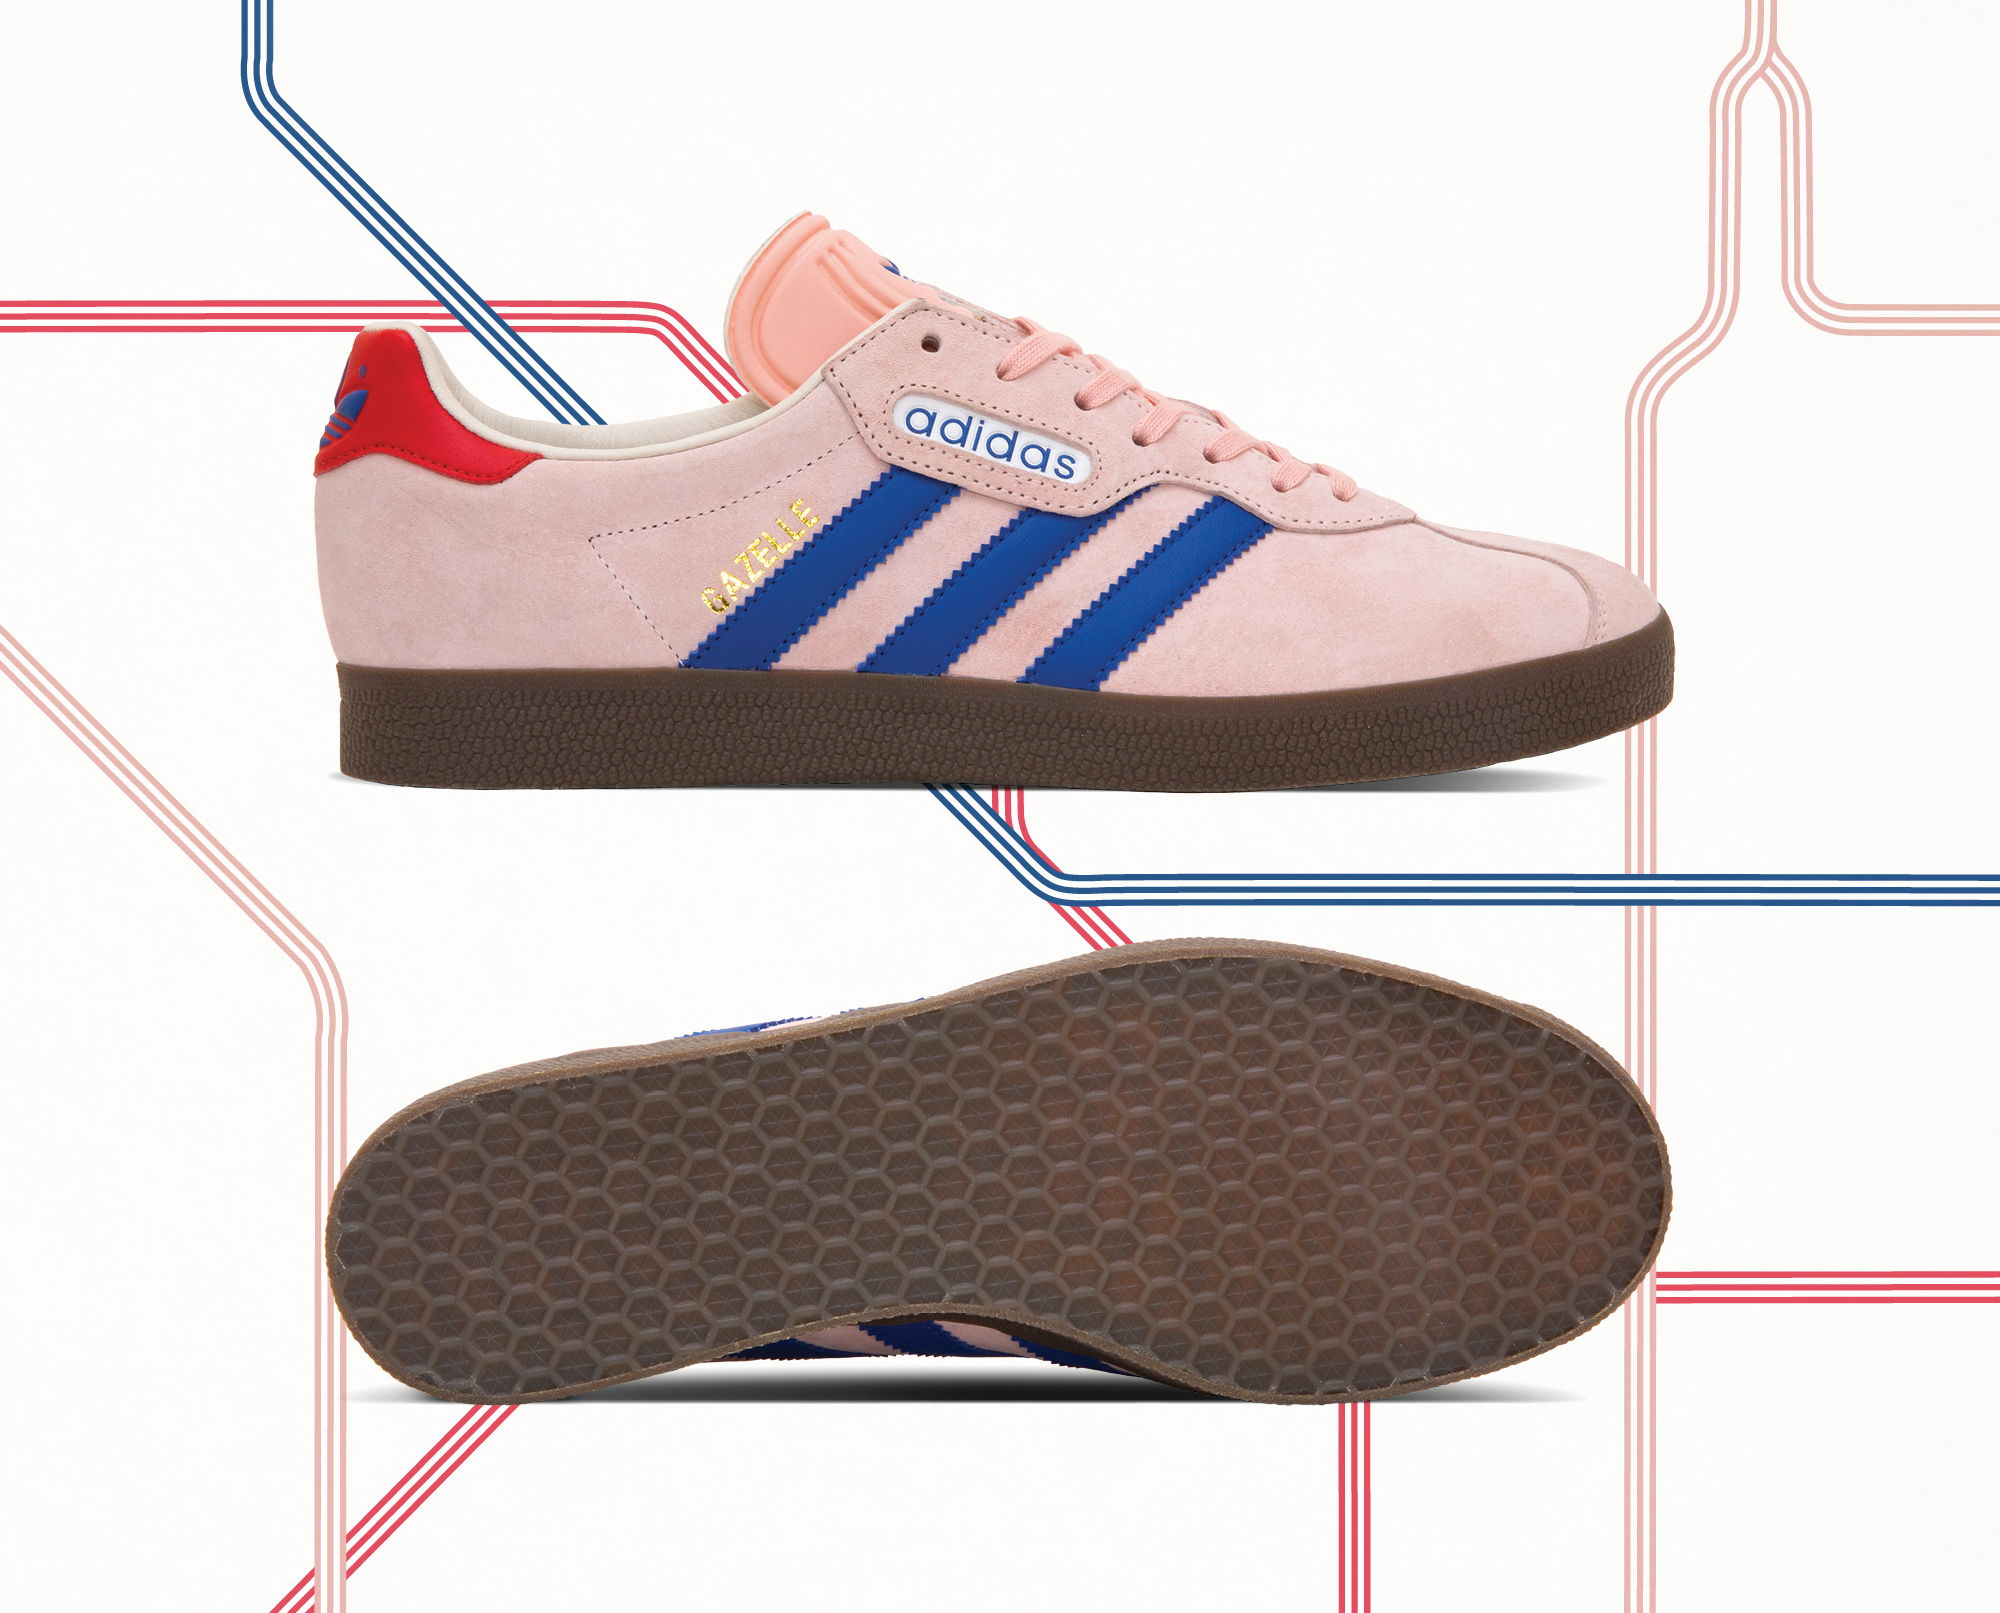 calentar Mm Equipo  adidas Originals Archive 'London to Manchester' - size? Exclusive - size?  blog